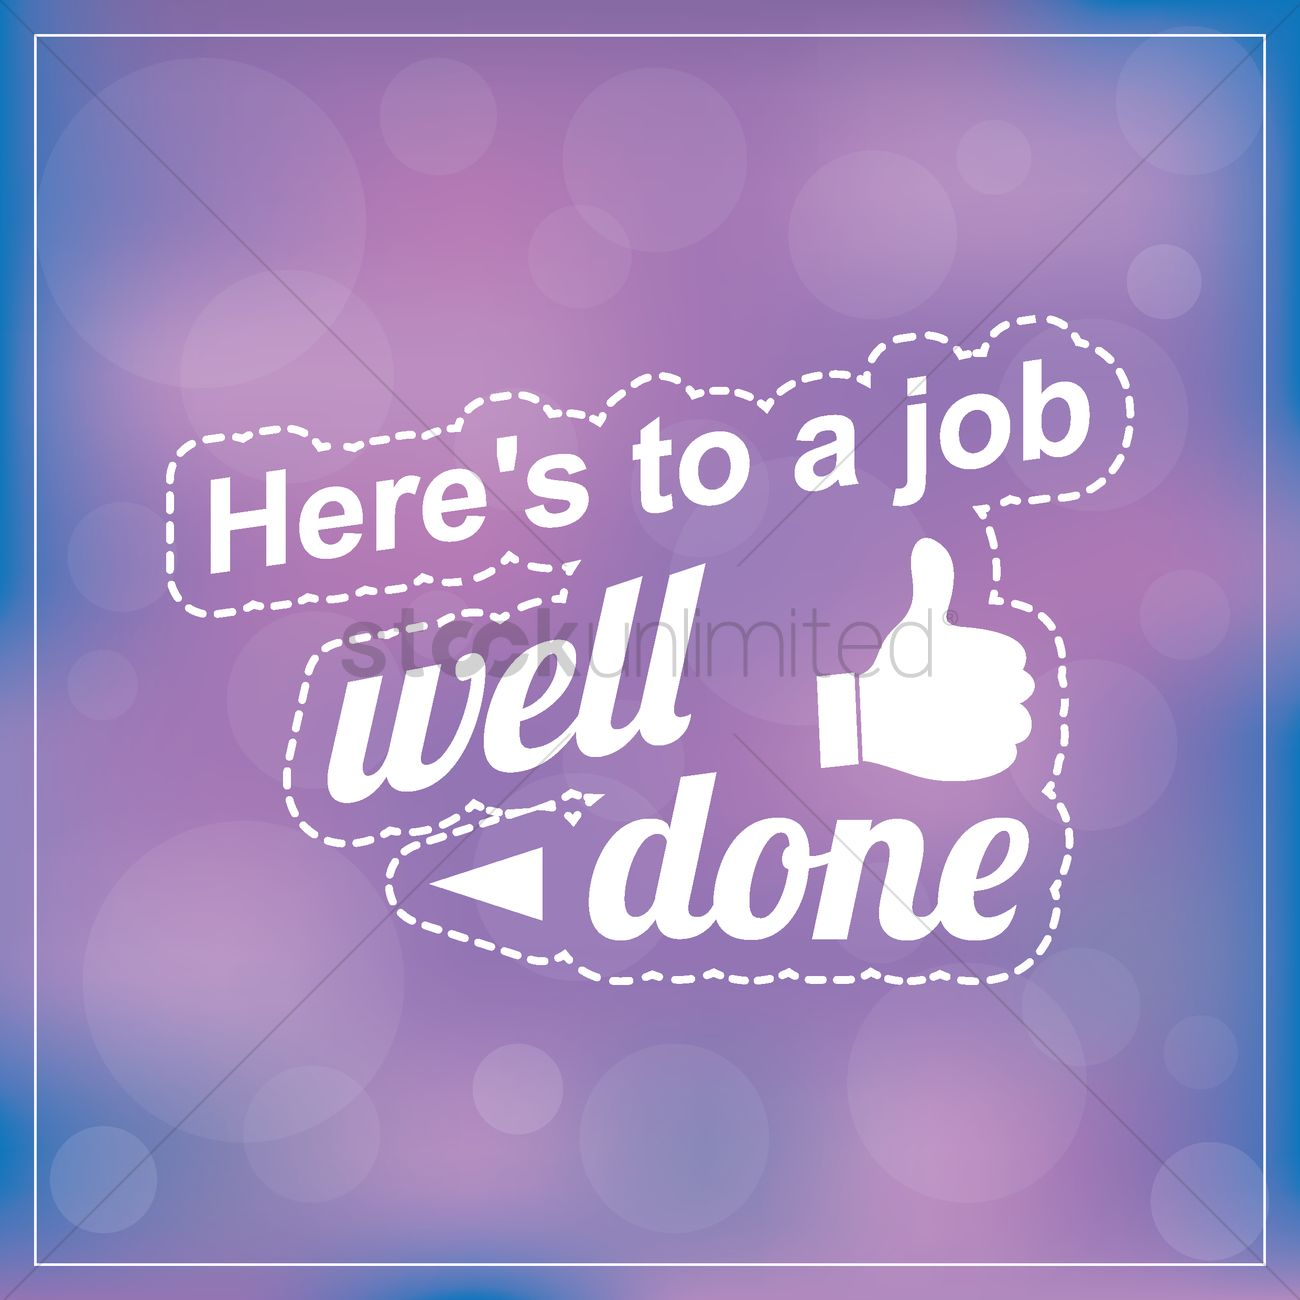 Appreciation Quotes For Good Work Done: Job Well Done Graphics